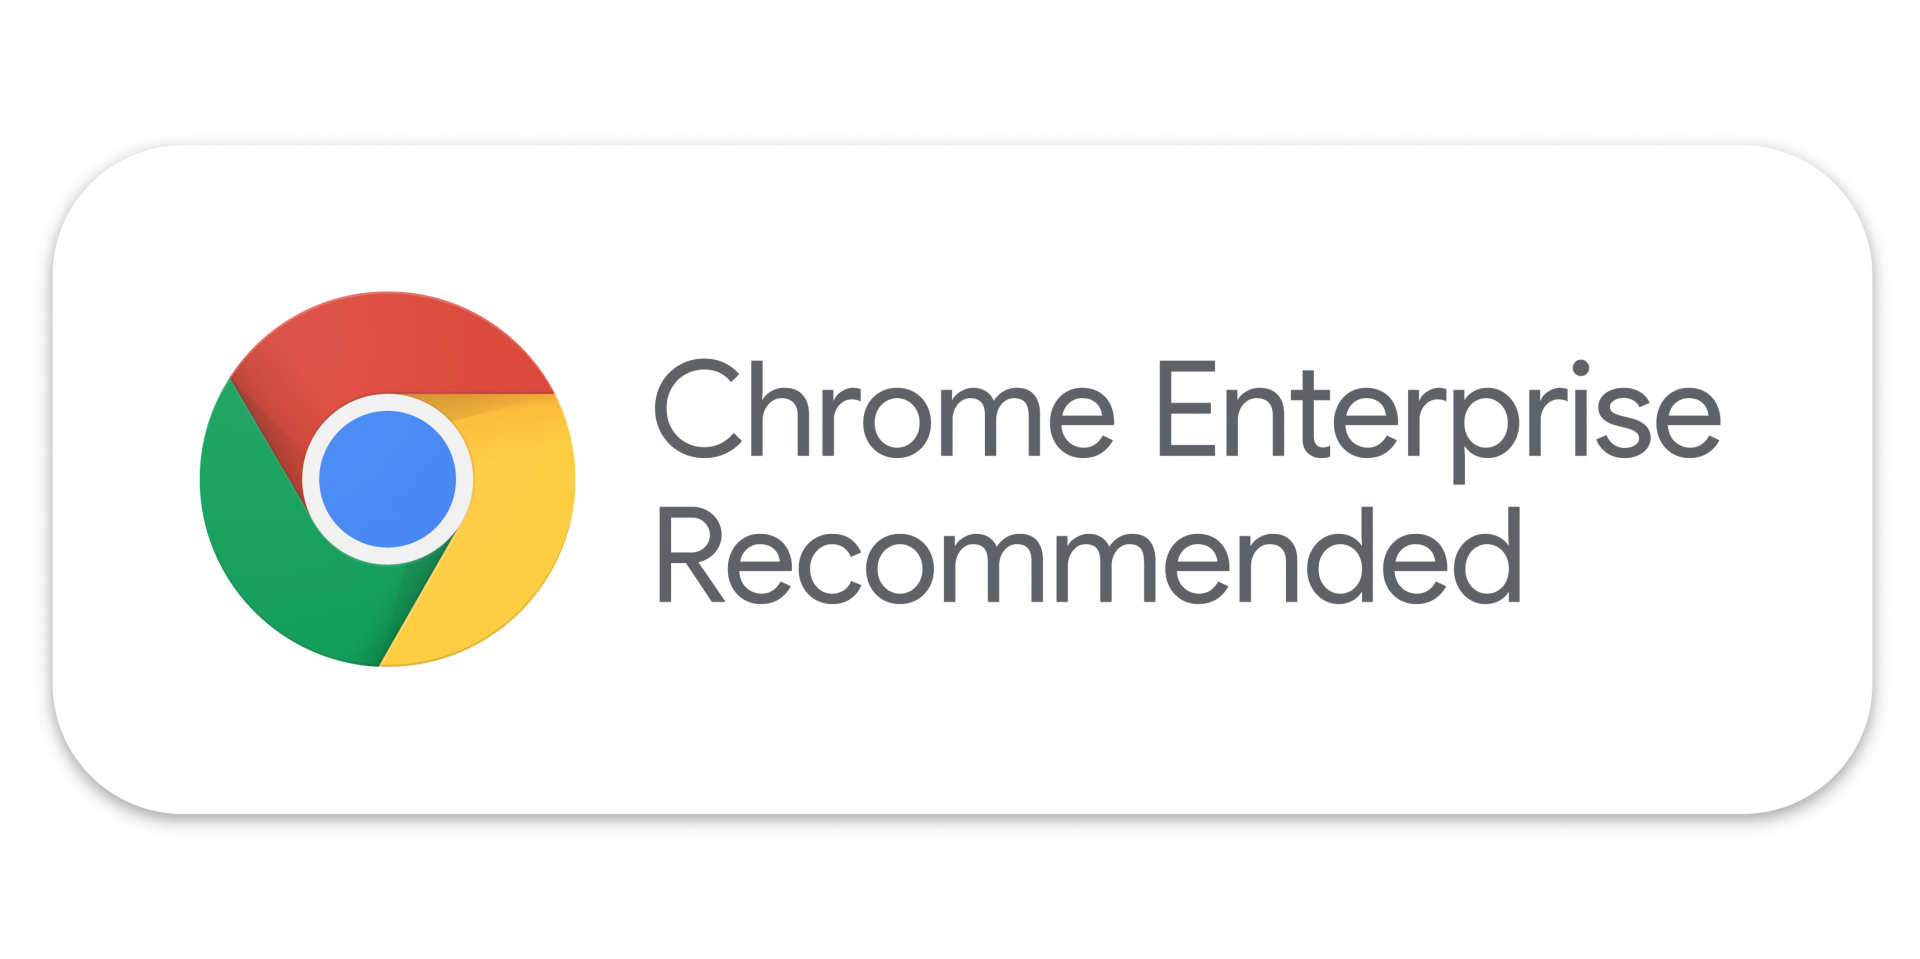 Google Chrome Enterprise Recommended